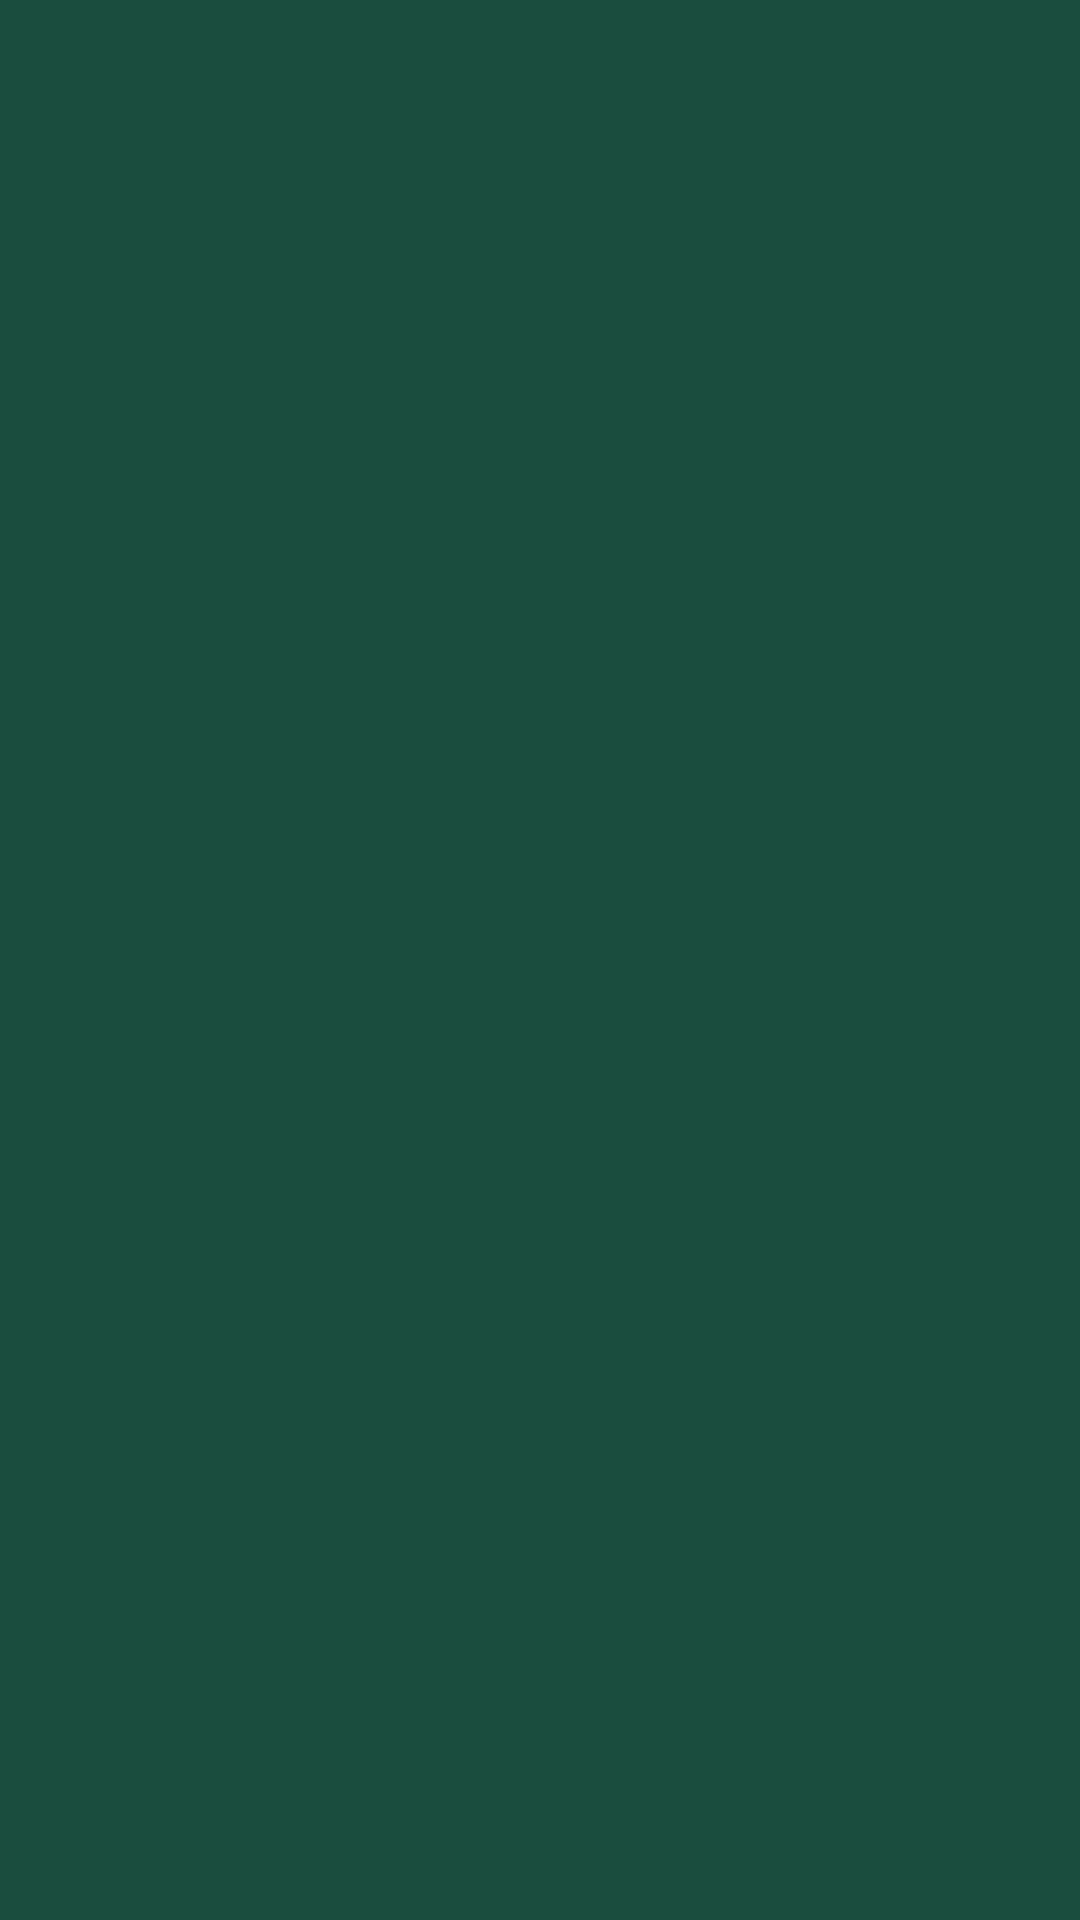 1080x1920 English Green Solid Color Background